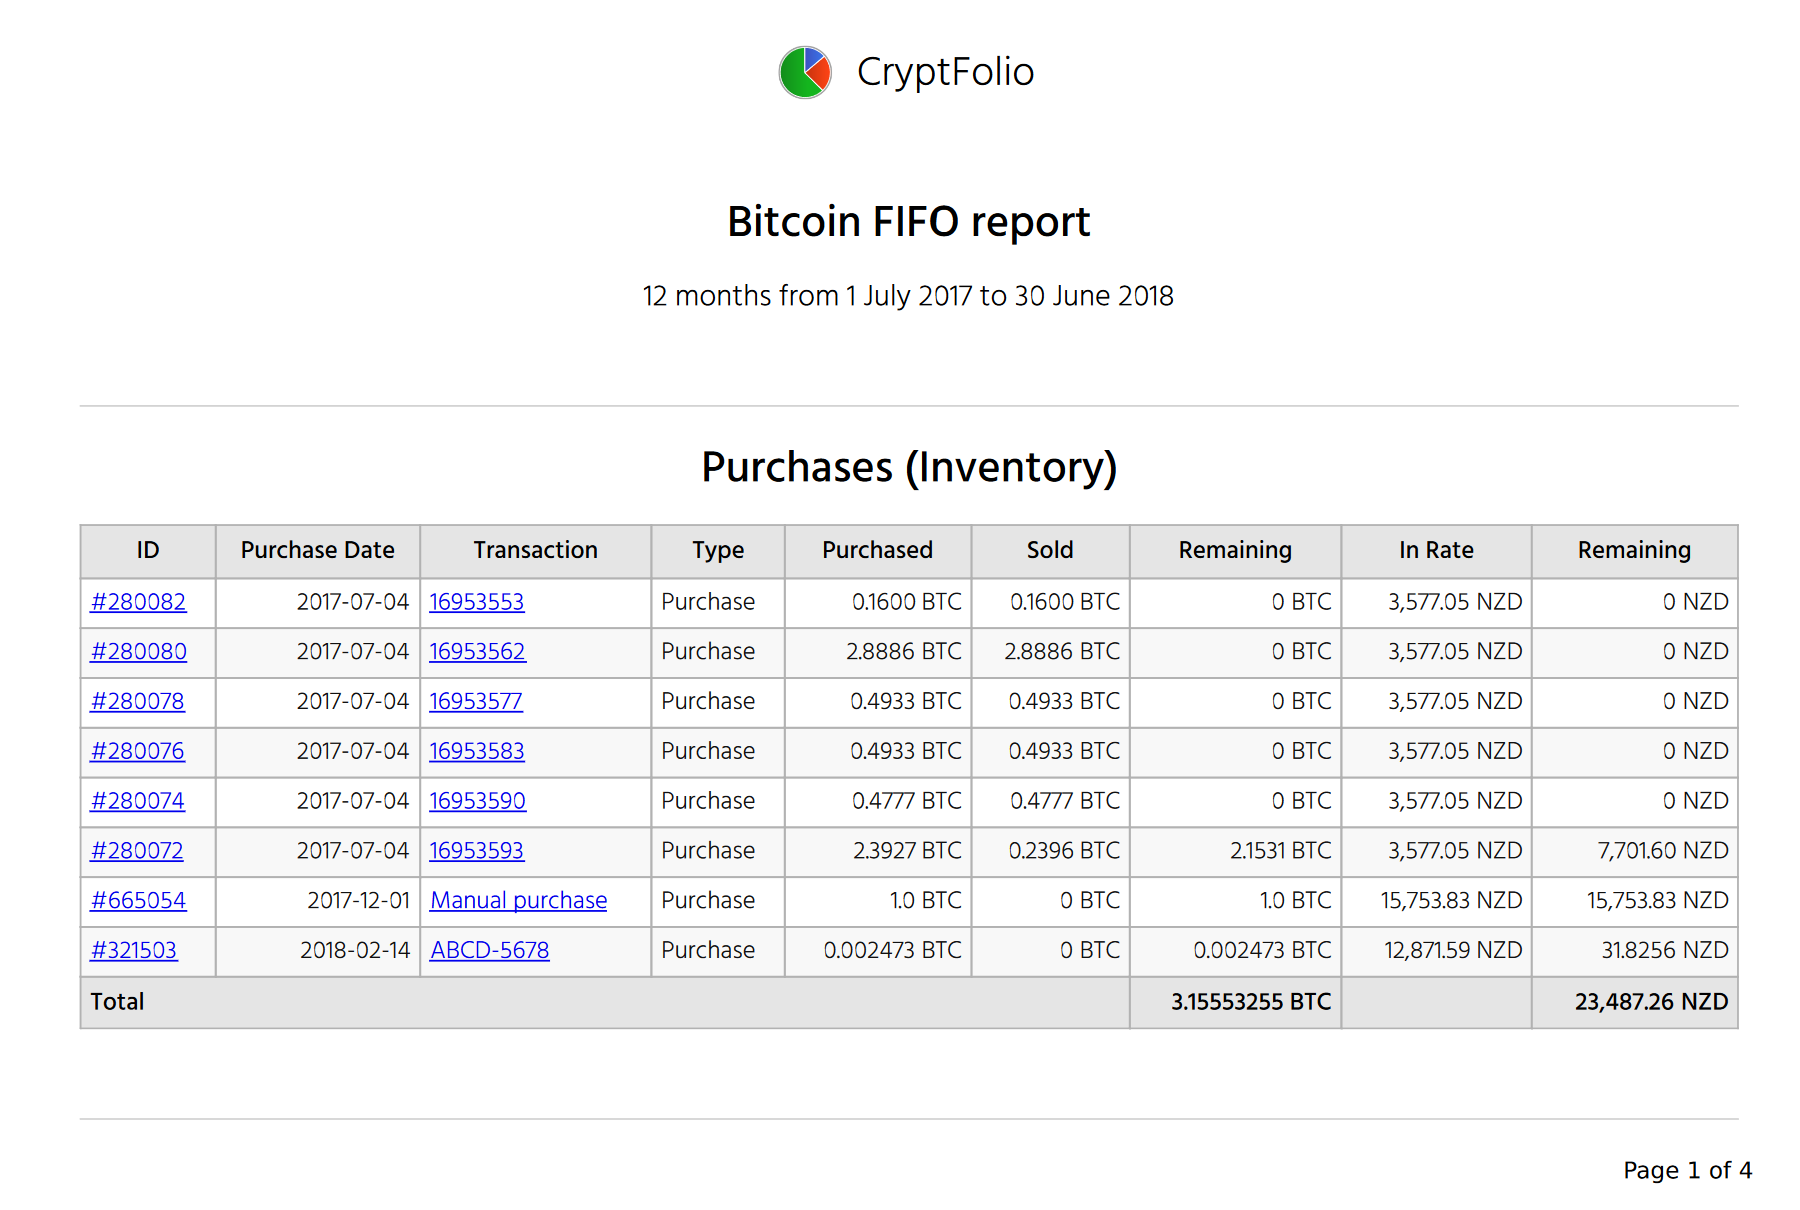 Screenshot of the first page of a sample FIFO report, as exported to PDF by CryptFolio. The FIFO report is showing the dates covered in the report, and a list of purchases (inventory) in the report period.